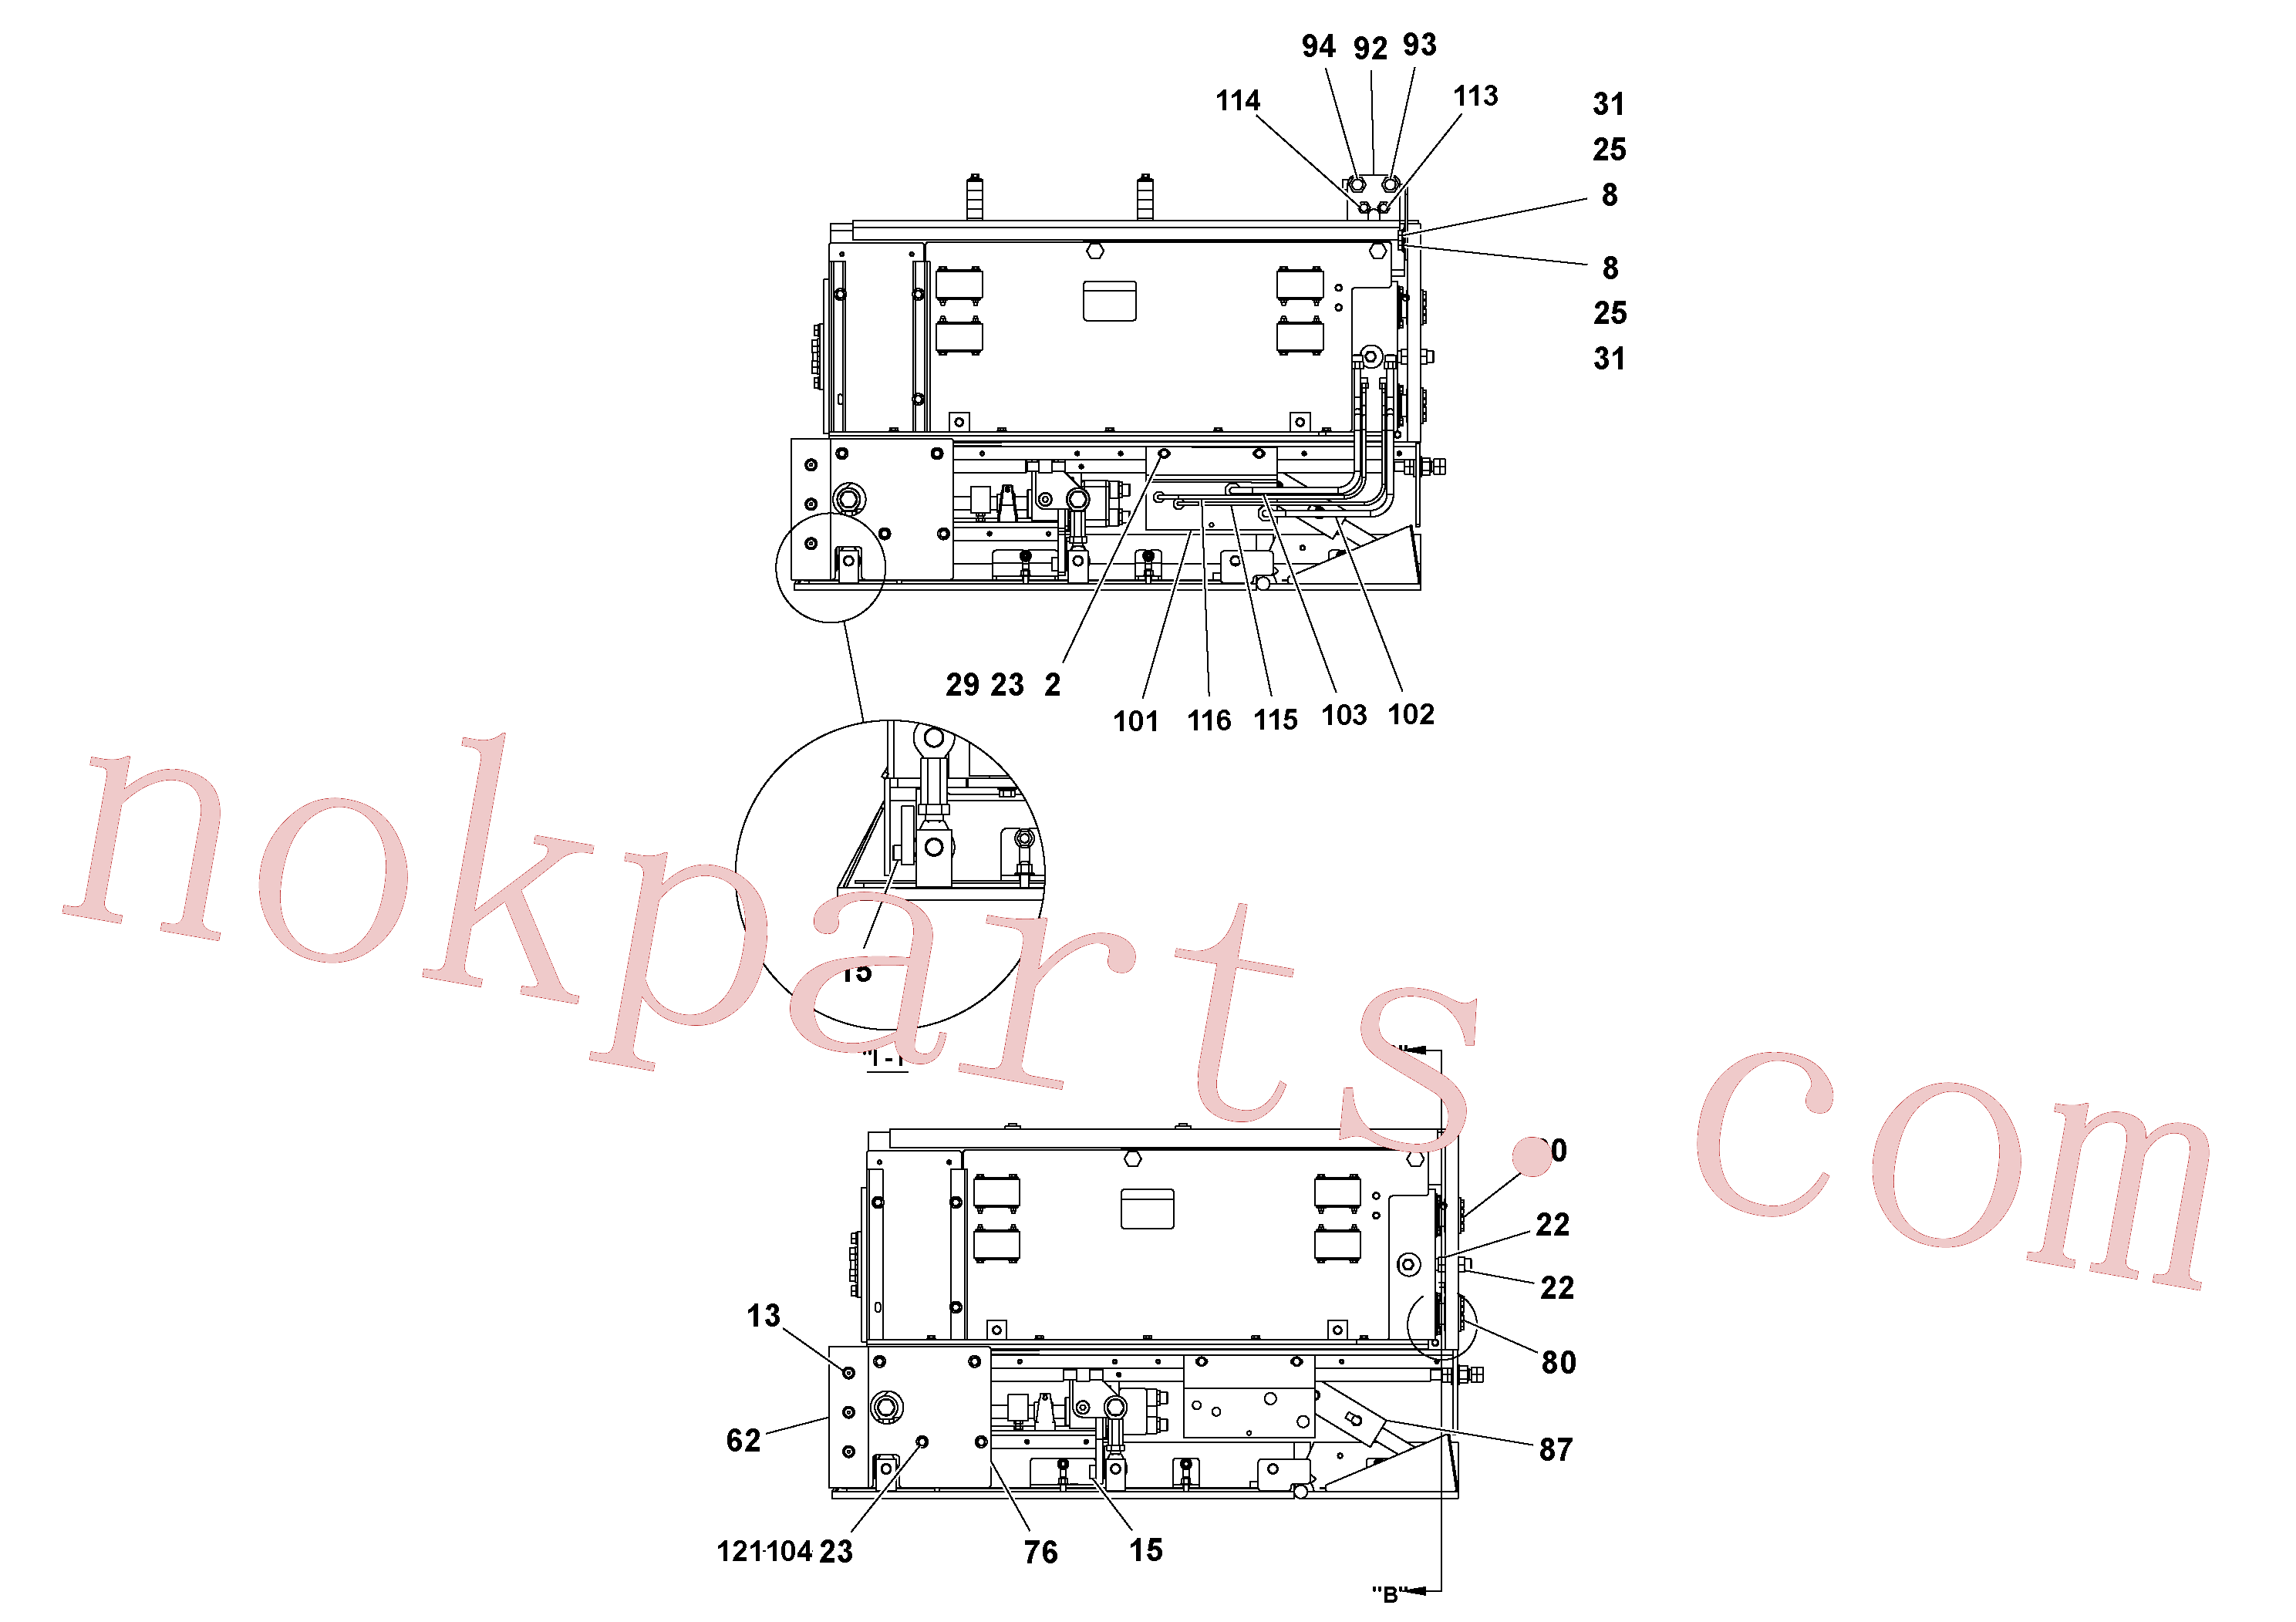 RM20313870 for Volvo 4' Extension Assembly(1036844 assembly)